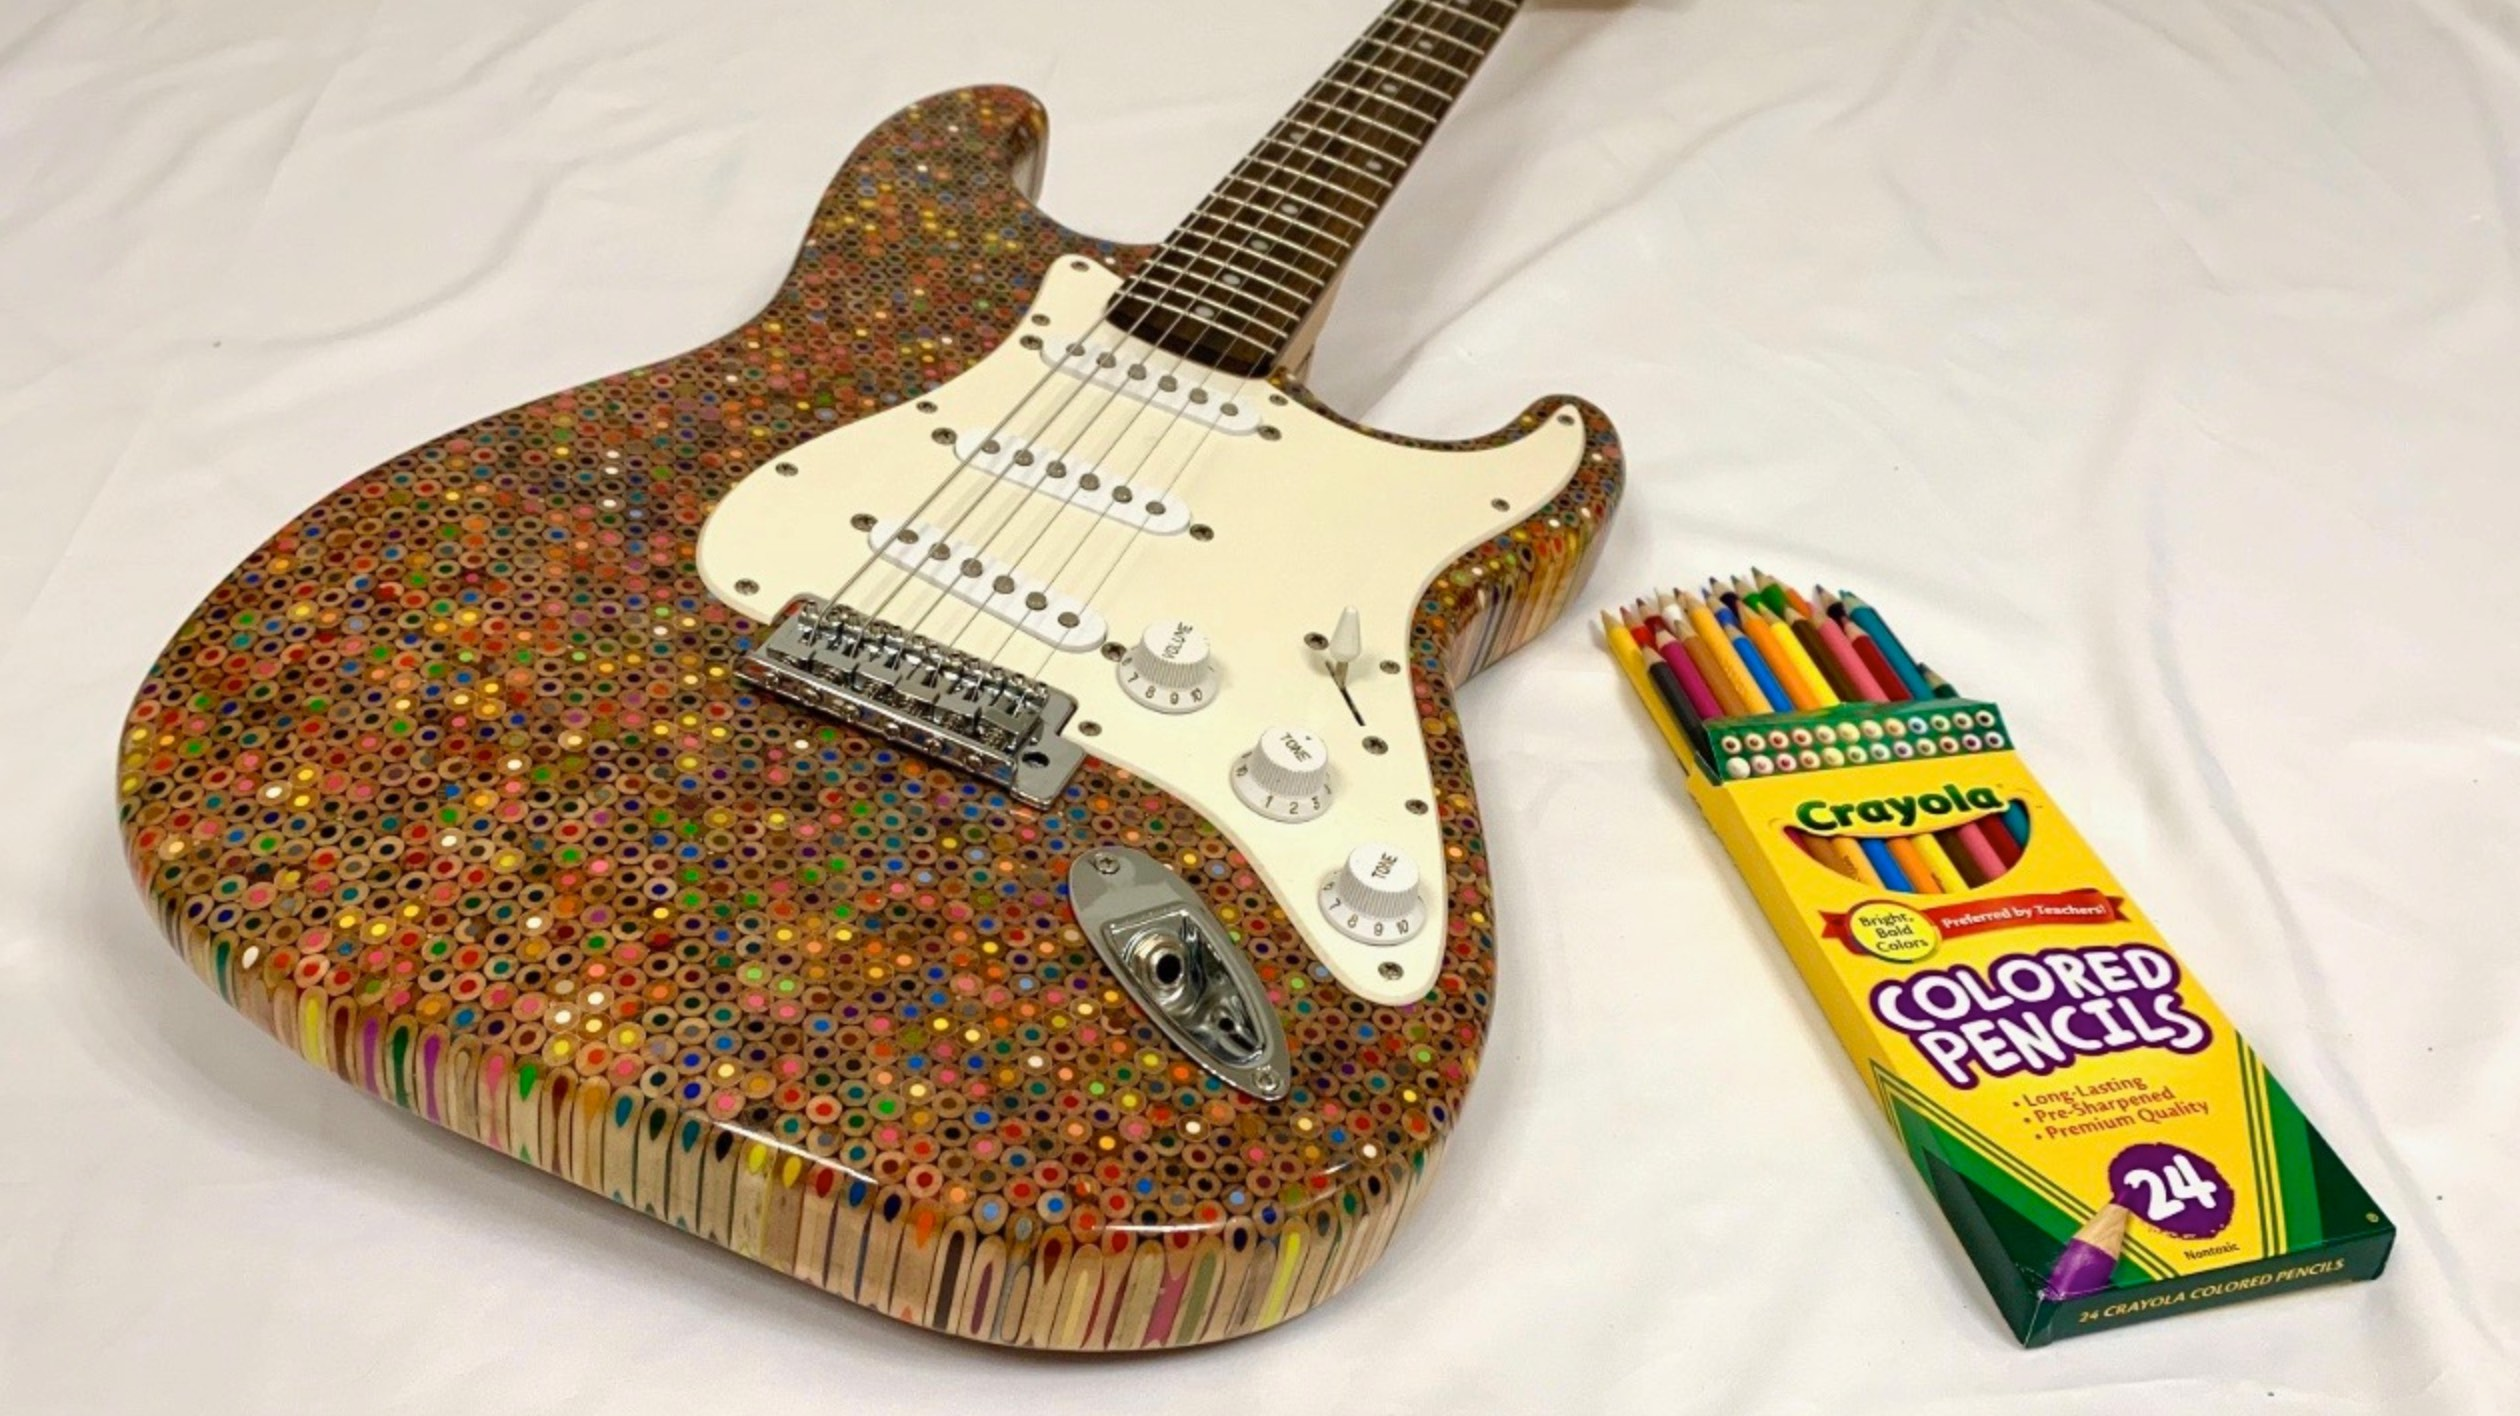 Fantastic Electric Guitar Built From 1 200 Colored Pencils